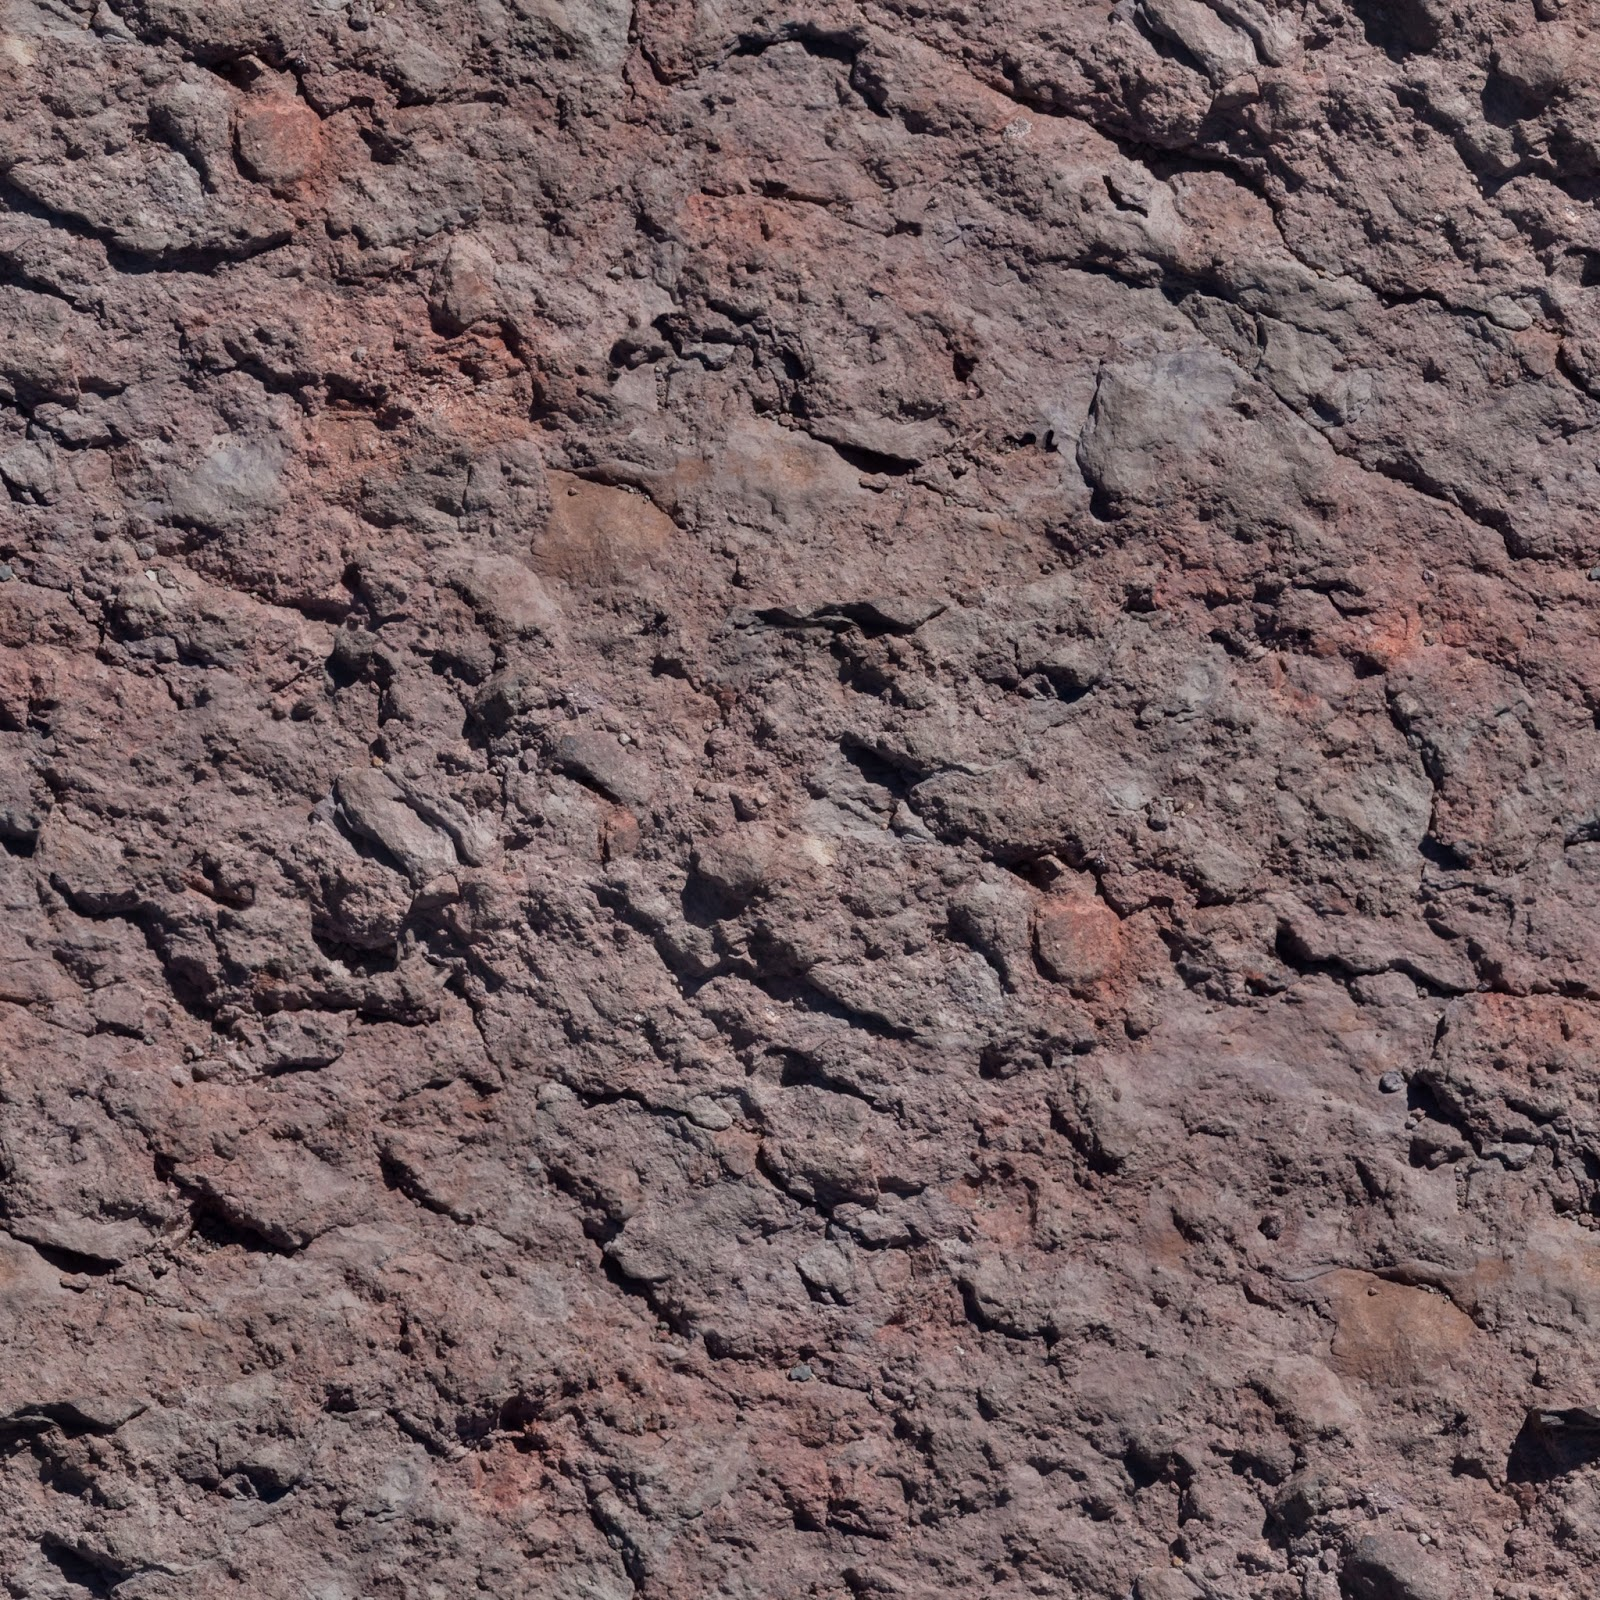 High Resolution Seamless Textures: Orange rock face texture